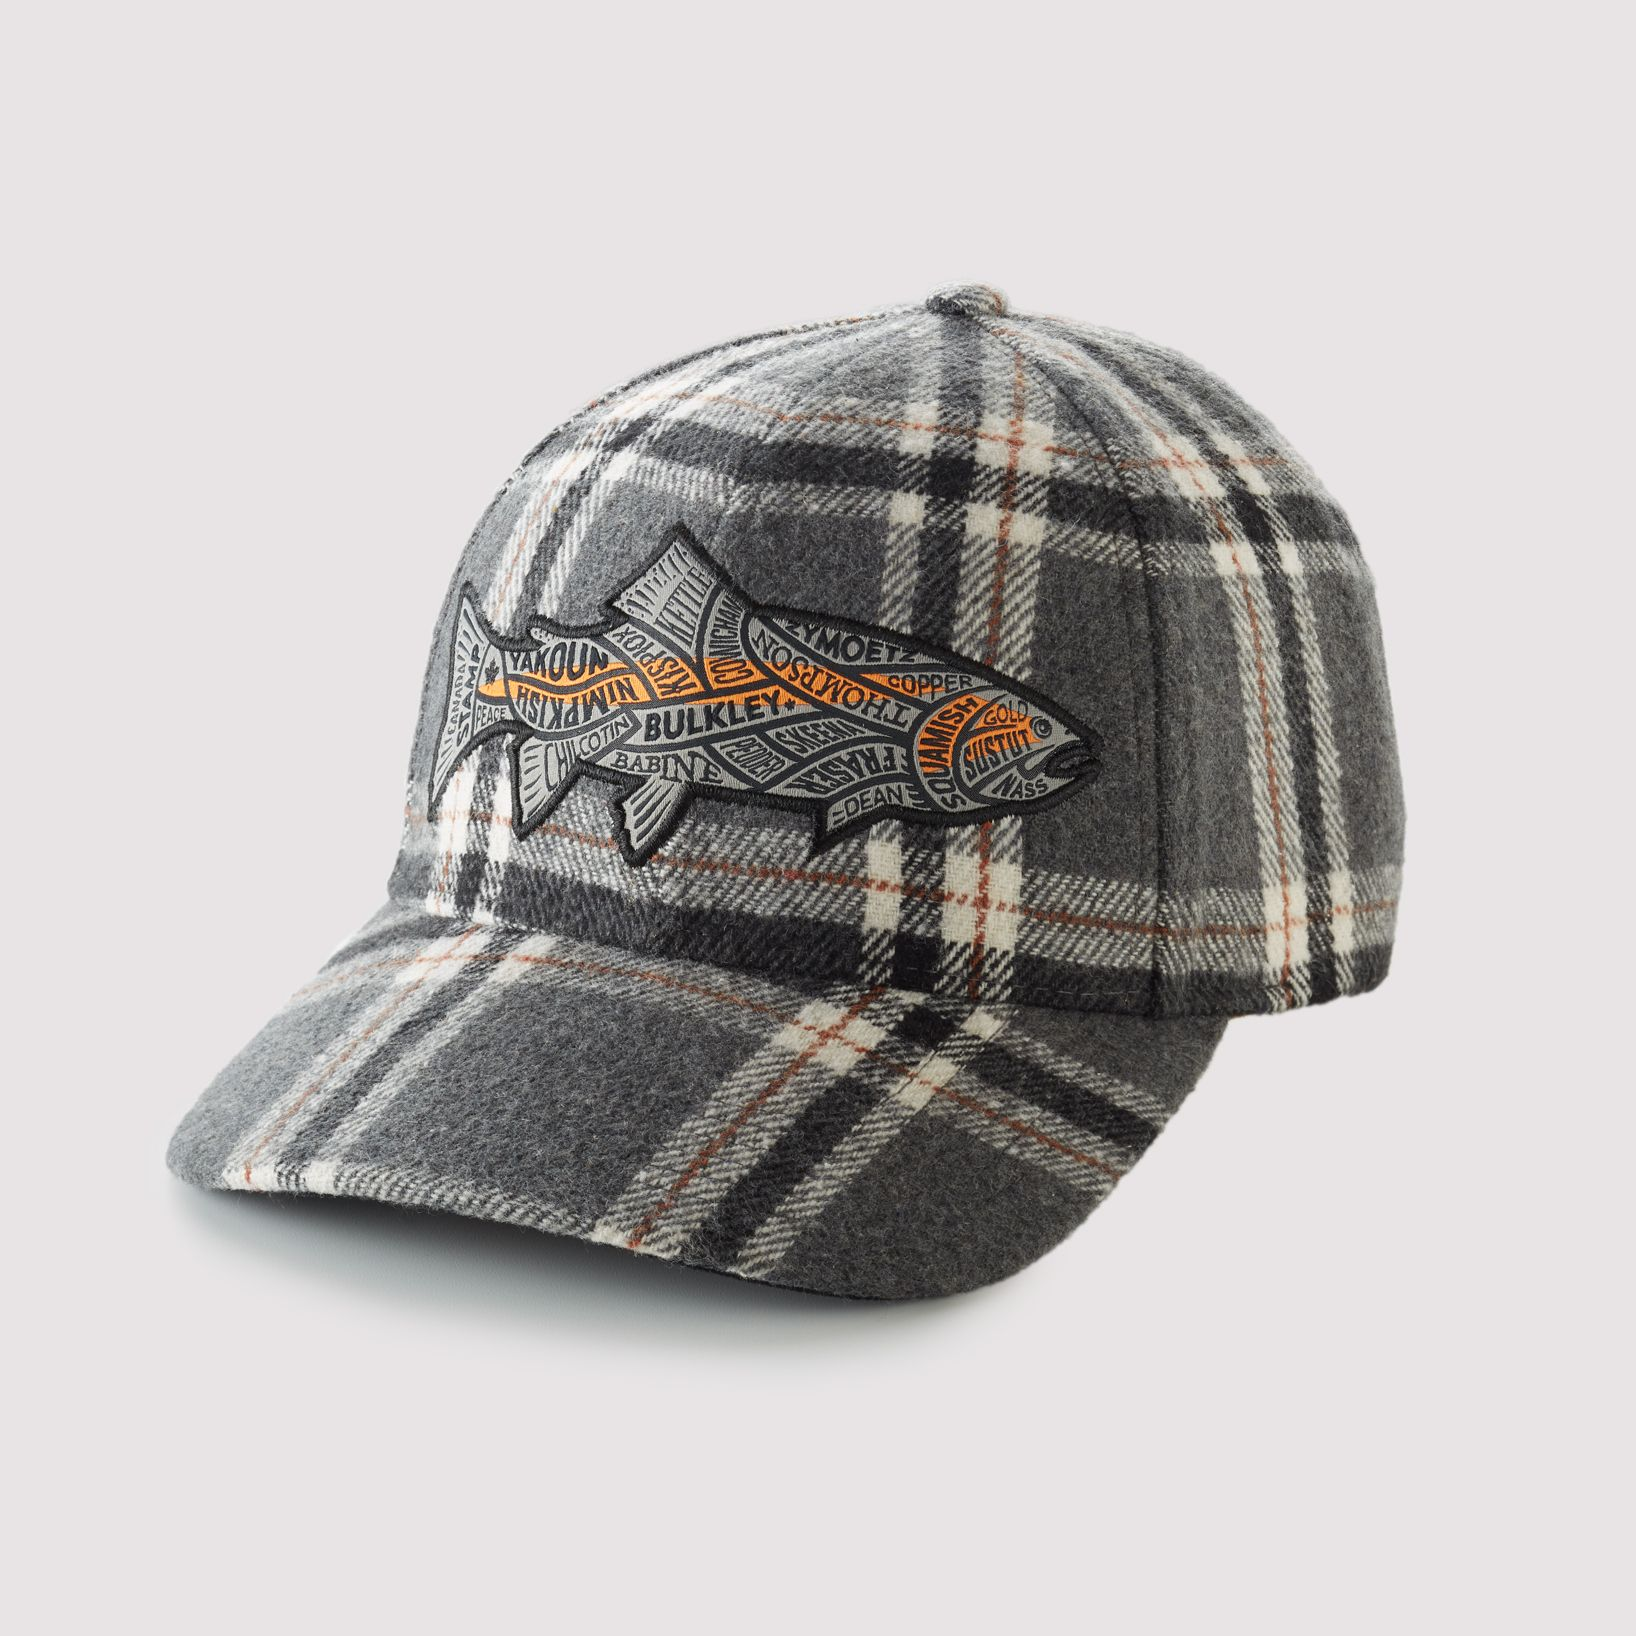 Western Canadian Steelhead Rivers Plaid Hats will be in next week A 500 donation will be made to the Wild Steelhead Coalition for every hat sold on Get em while they last...